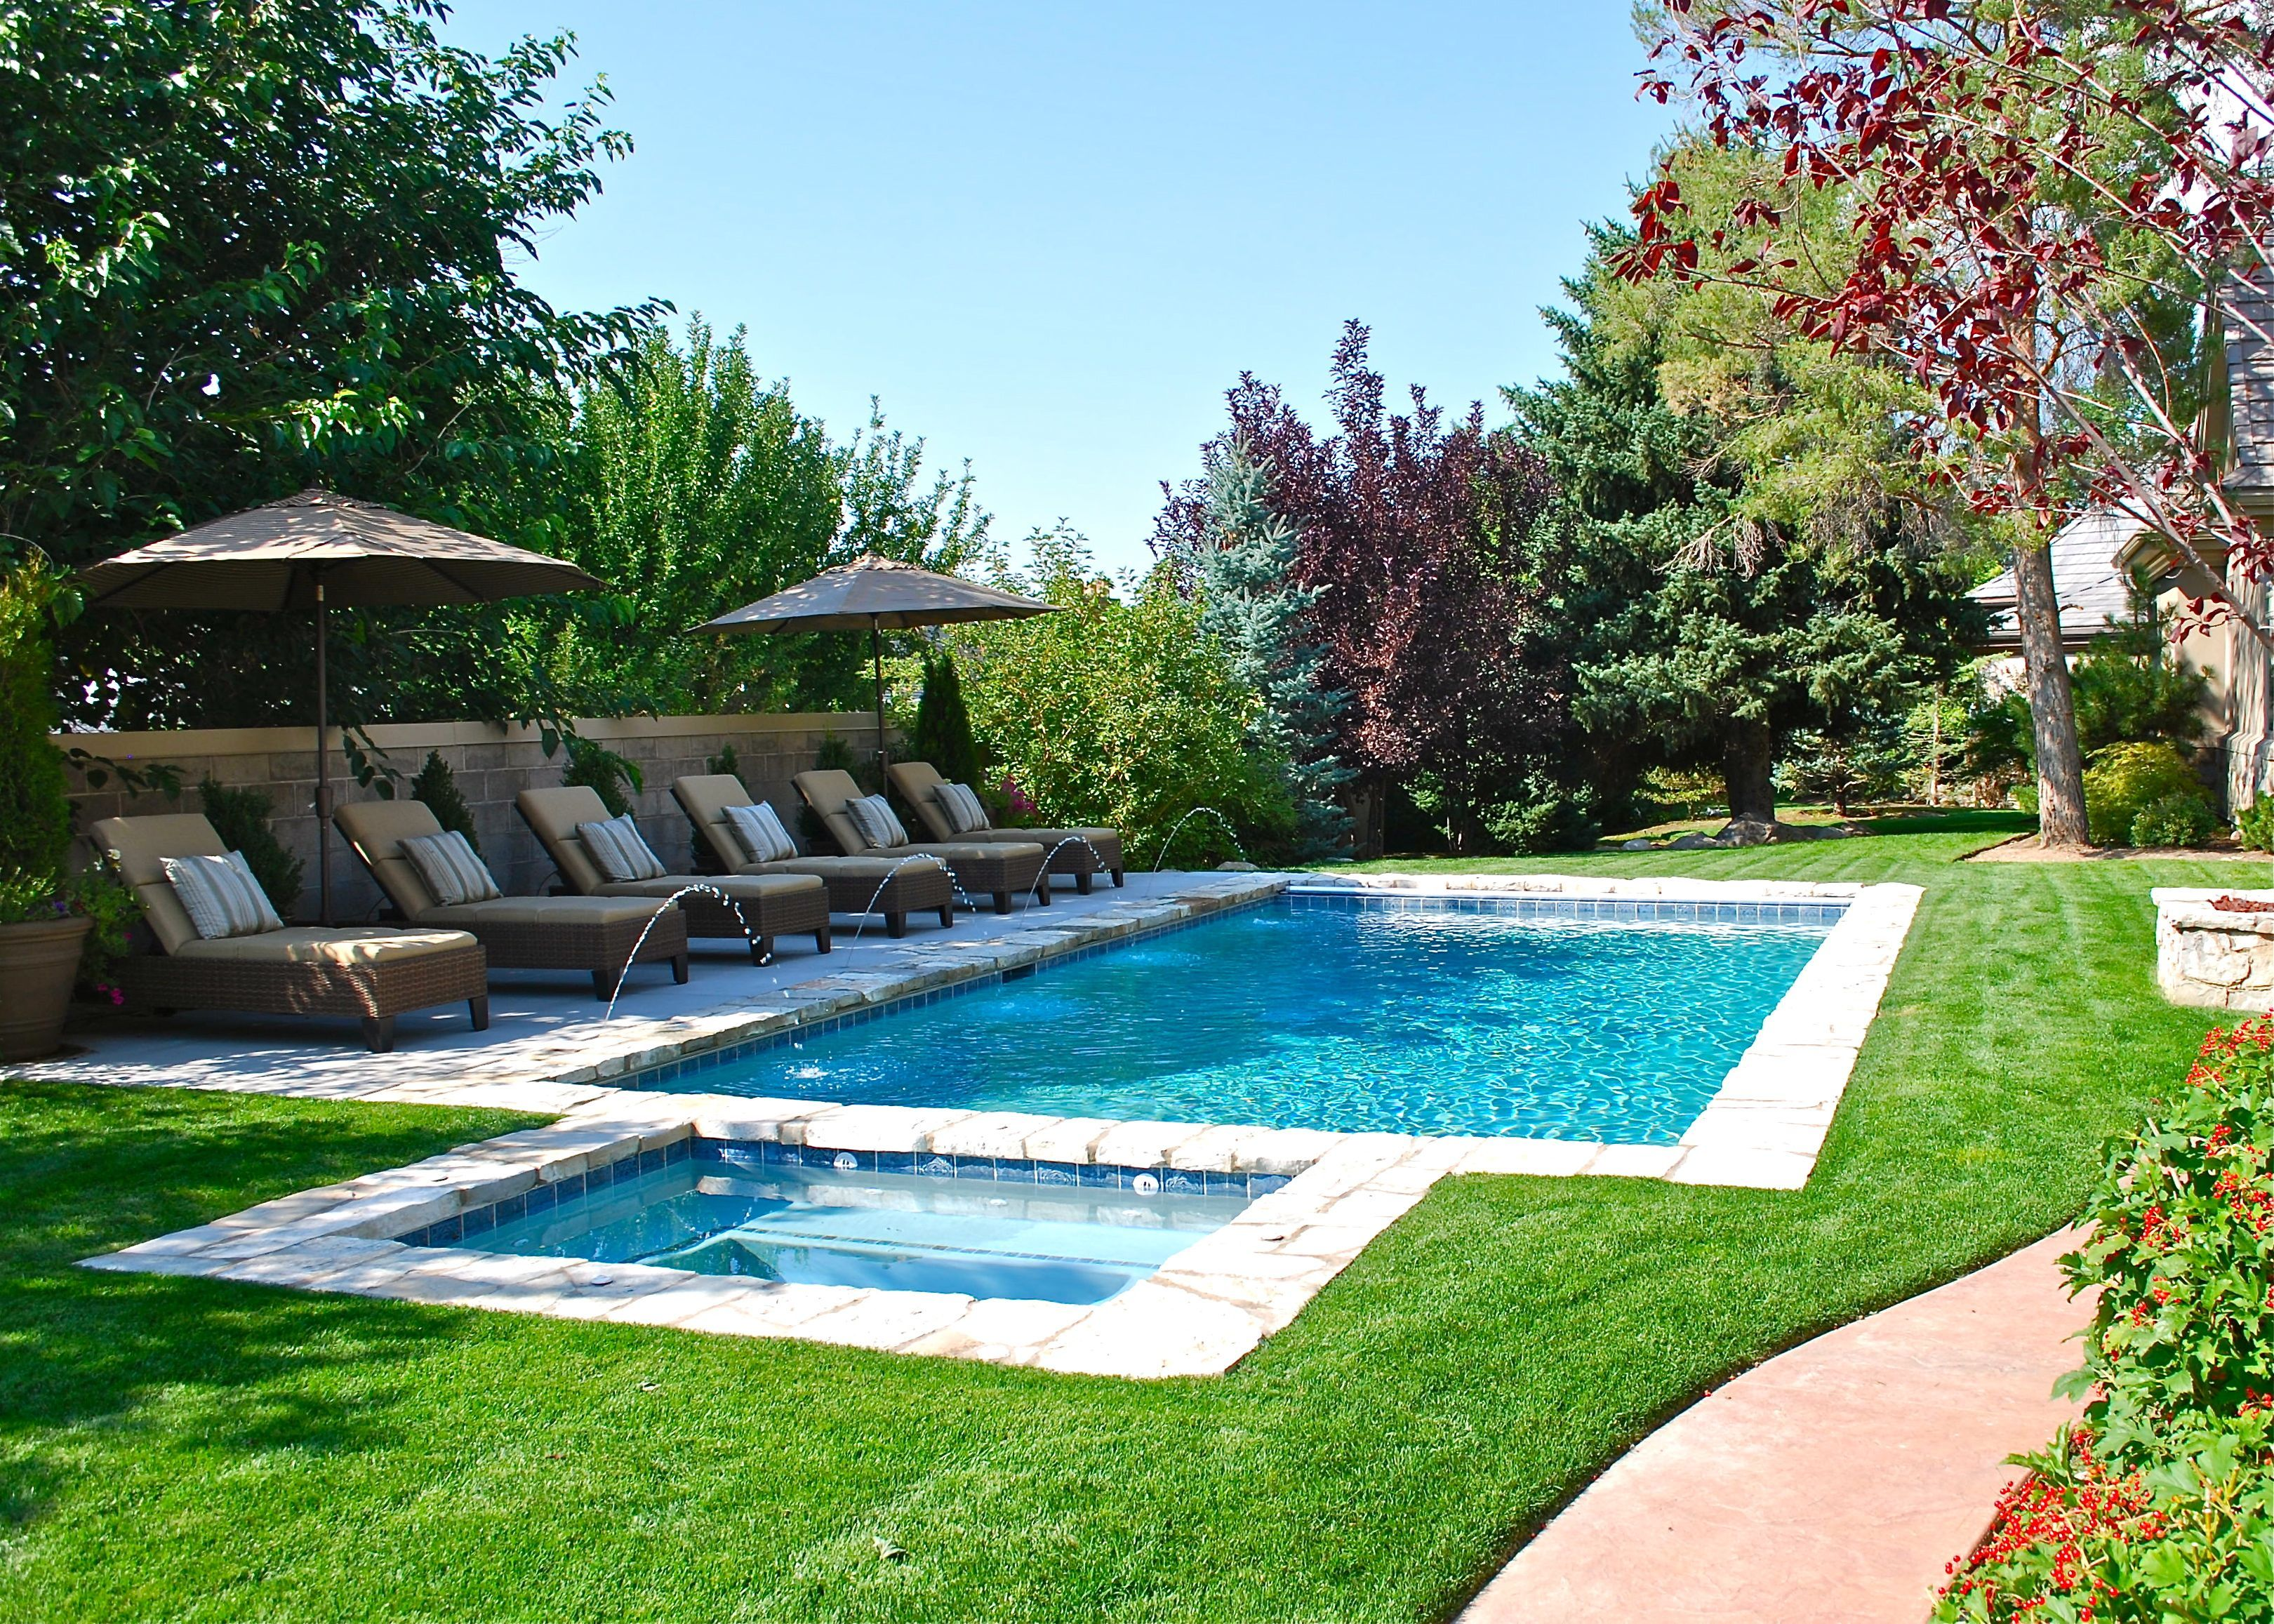 Backyard swimming pool with minimal decking deckjets and for Backyard inground pool ideas